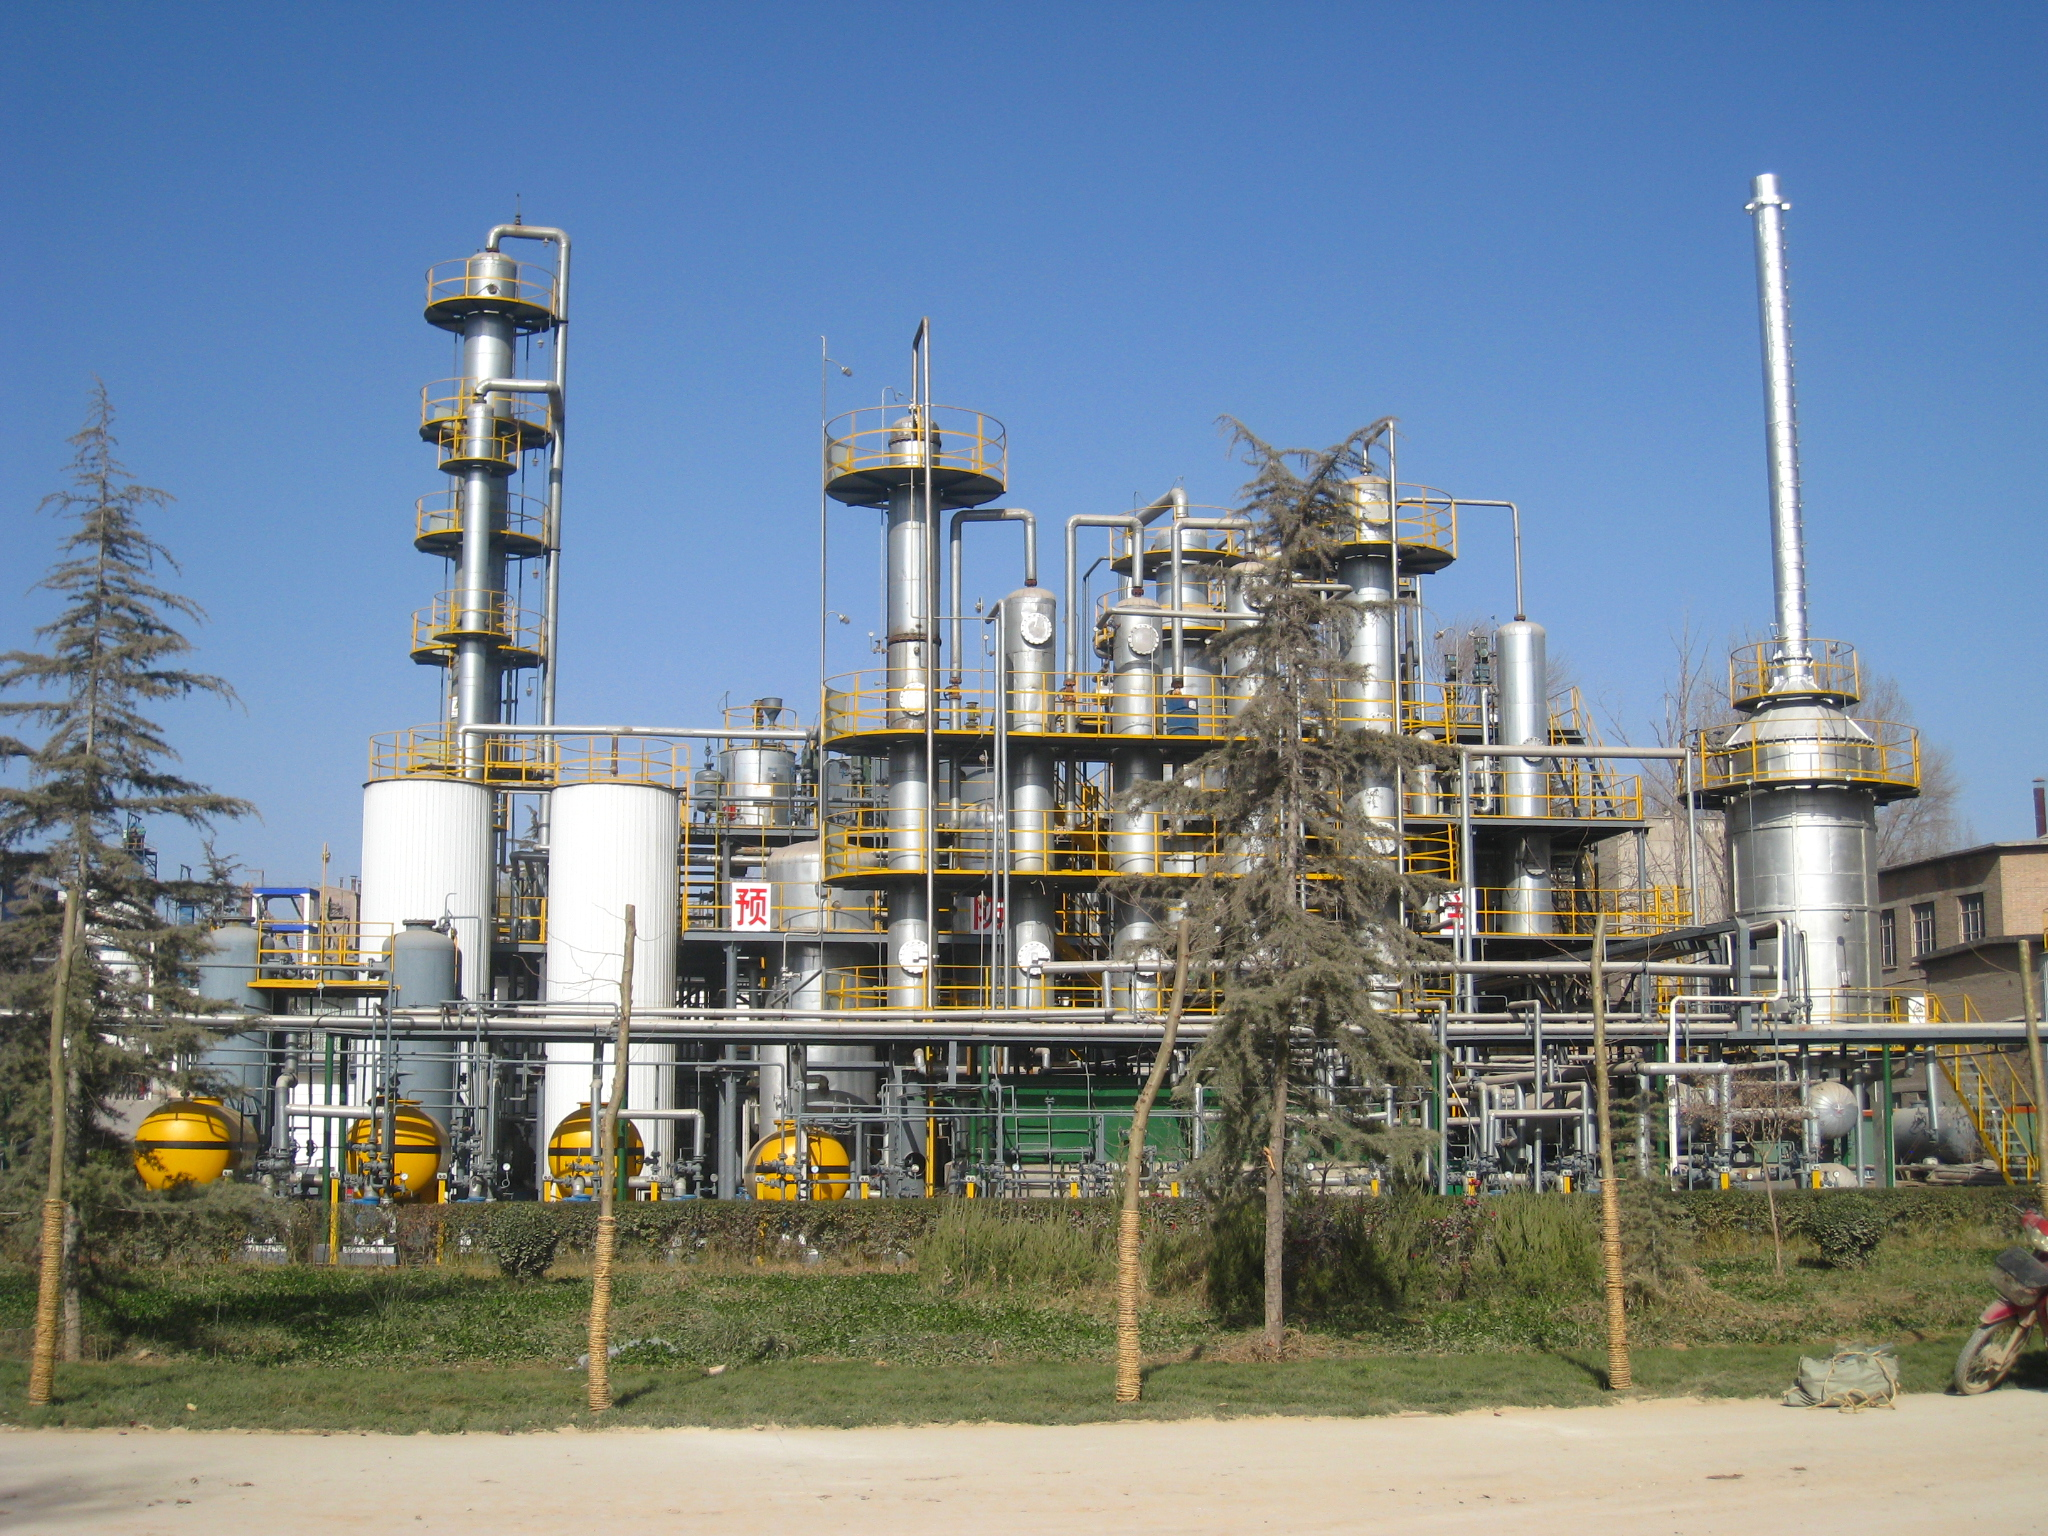 http://a.eqcdn.com/chinaintegratedenergyinc/files/pages/business-units/biodiesel-production-sales/50k-tongchuan-city-biodiesel-facility/IMG_3298.JPG